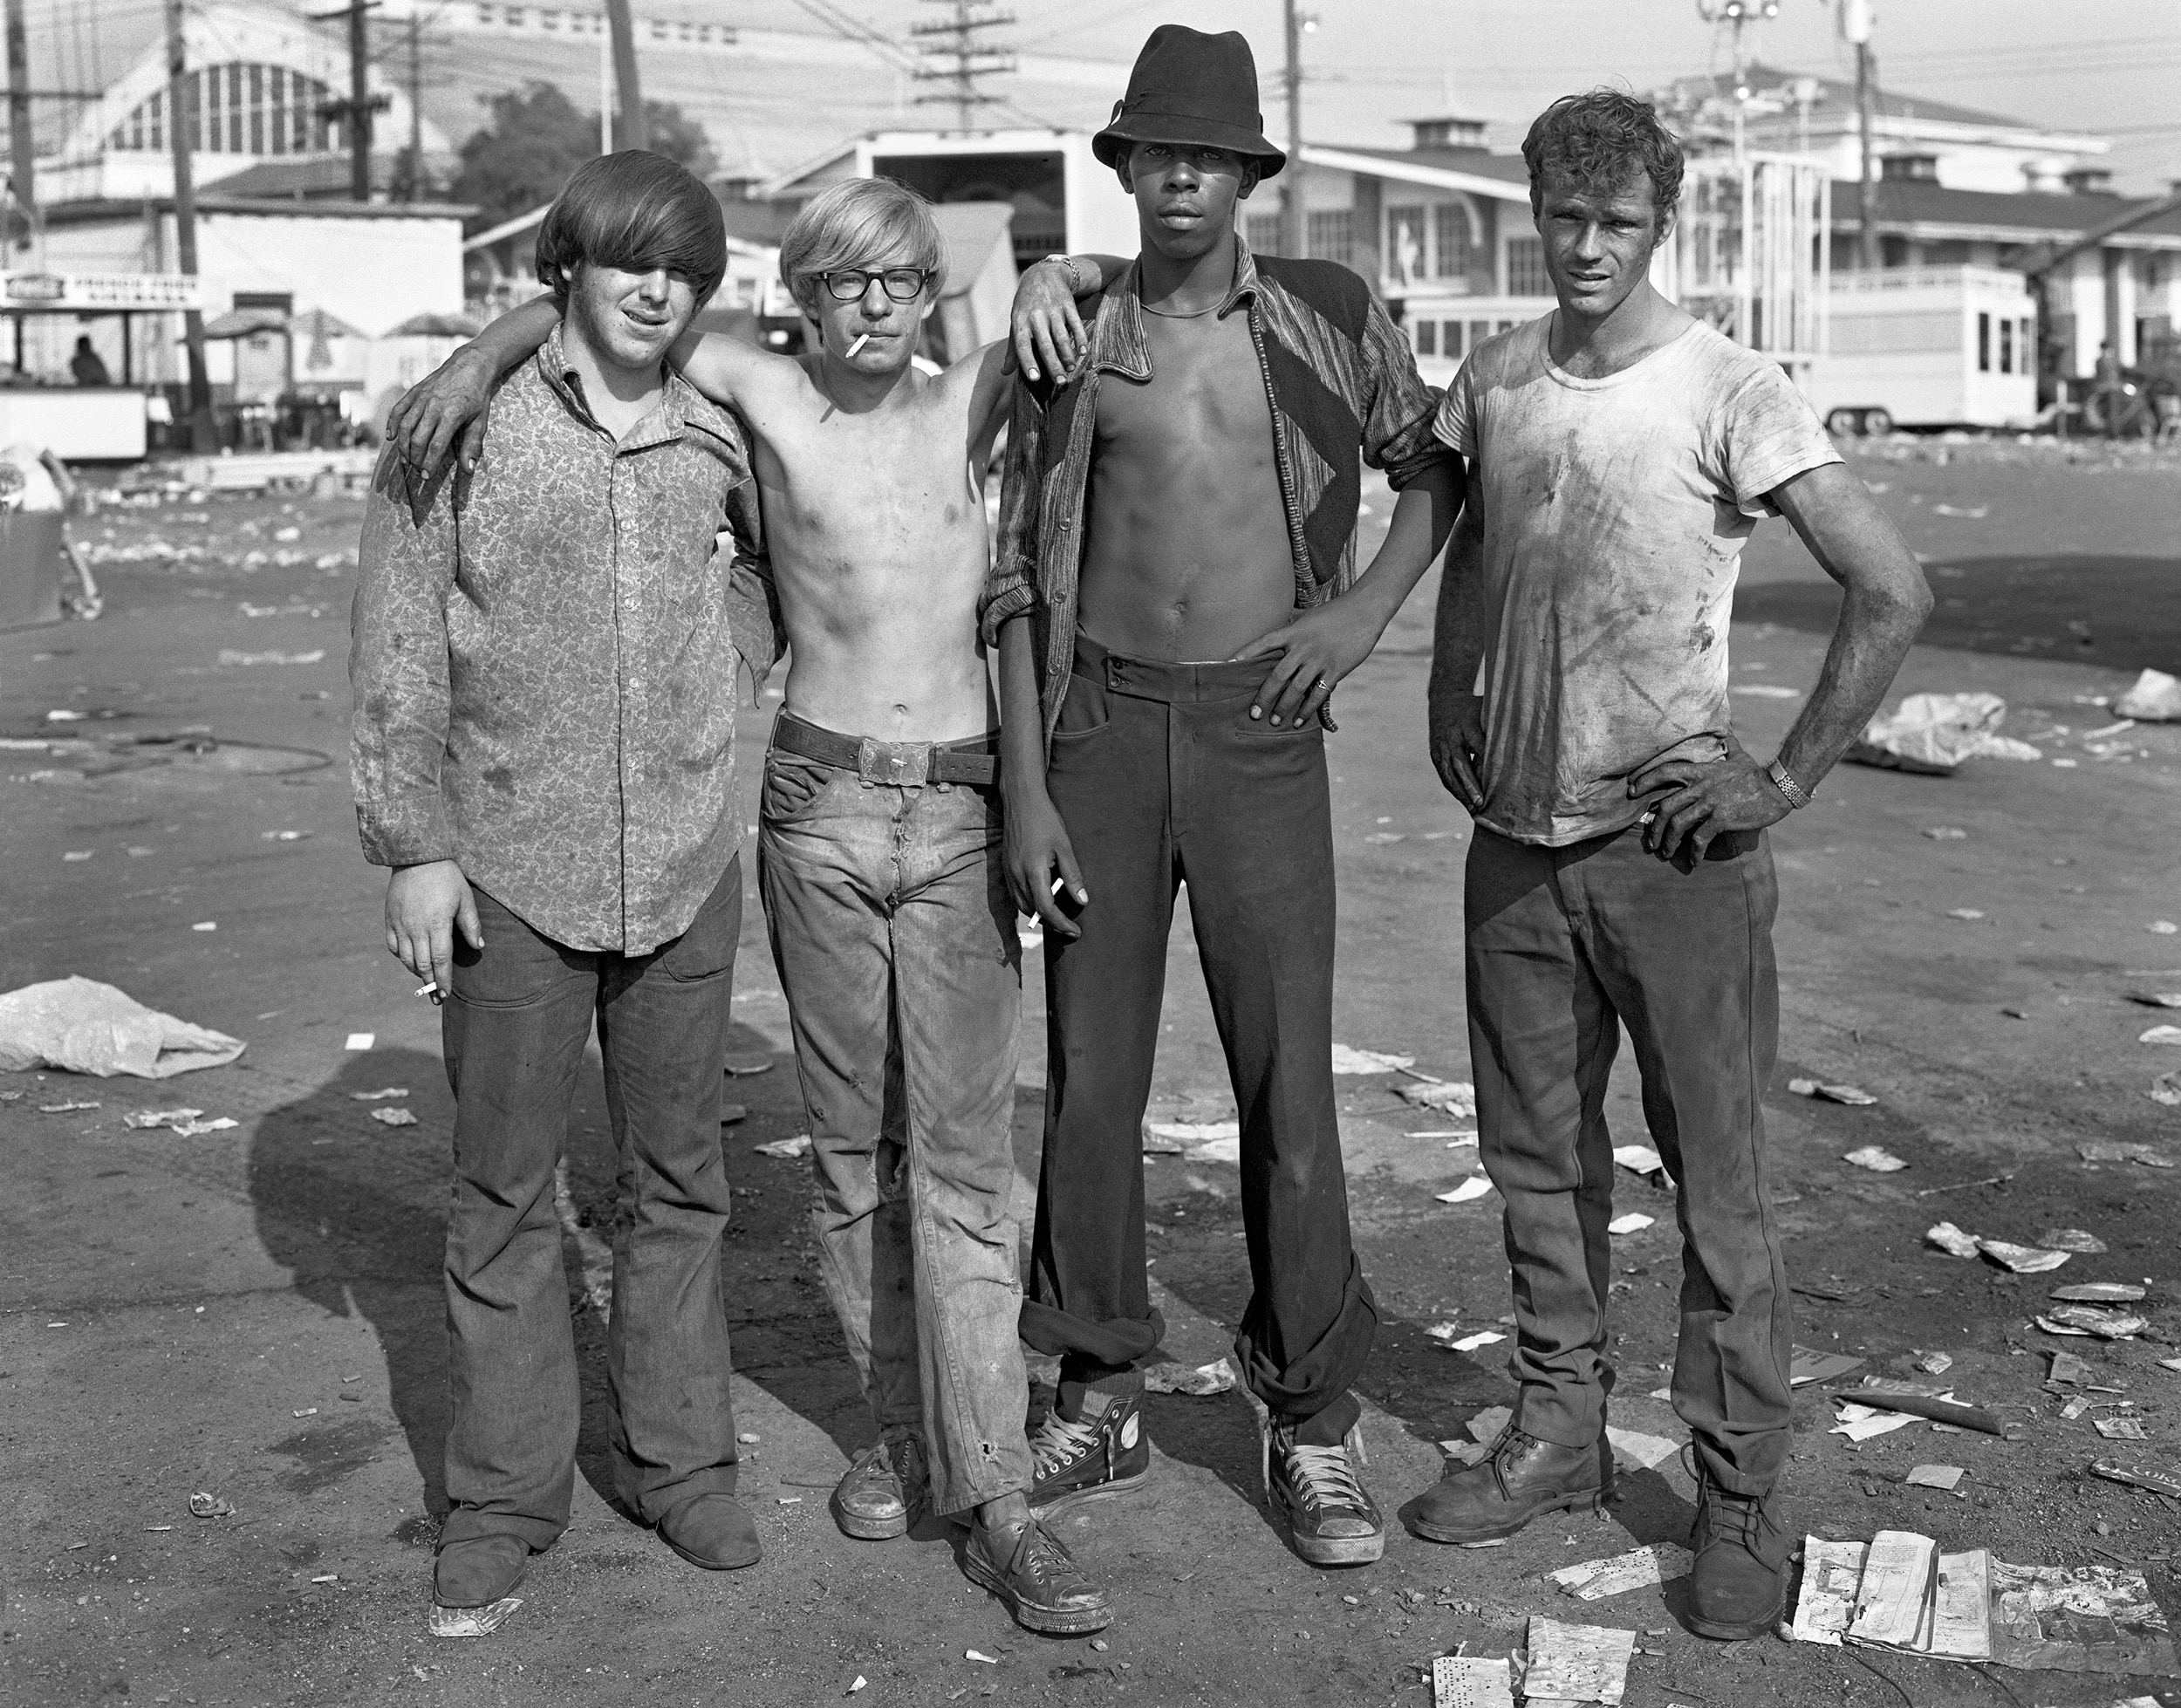 Four Carny Workers, Detroit, Michigan, 1973